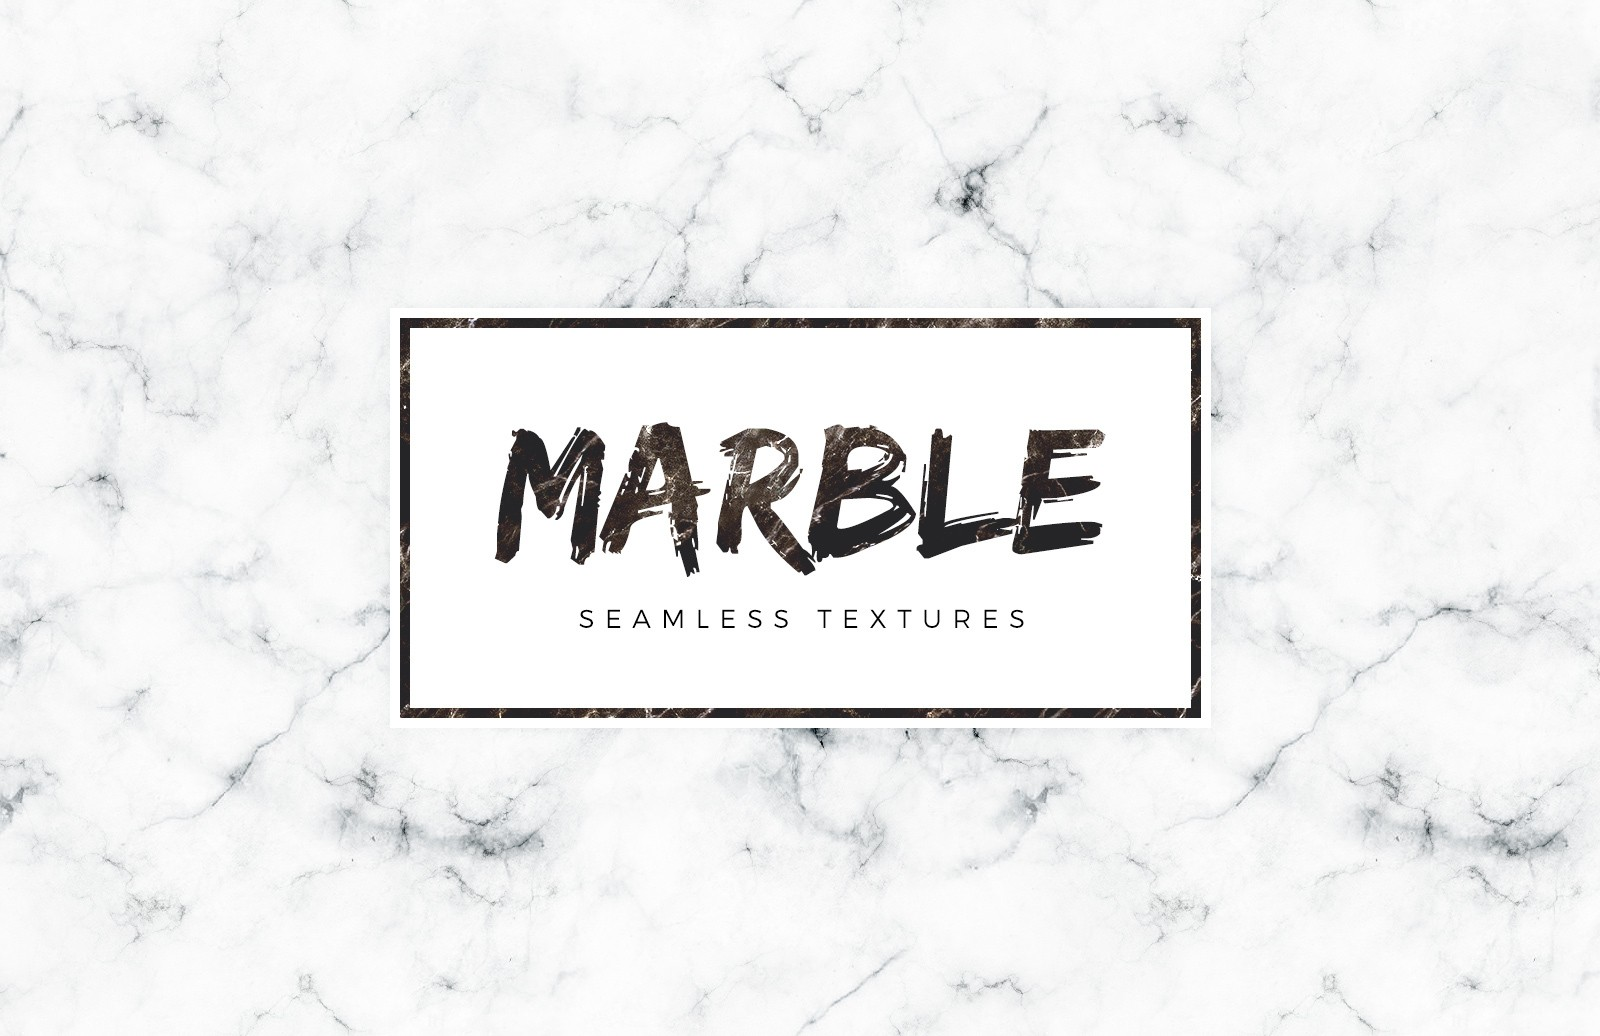 White Marble Seamless Textures Preview 1  Medialoot